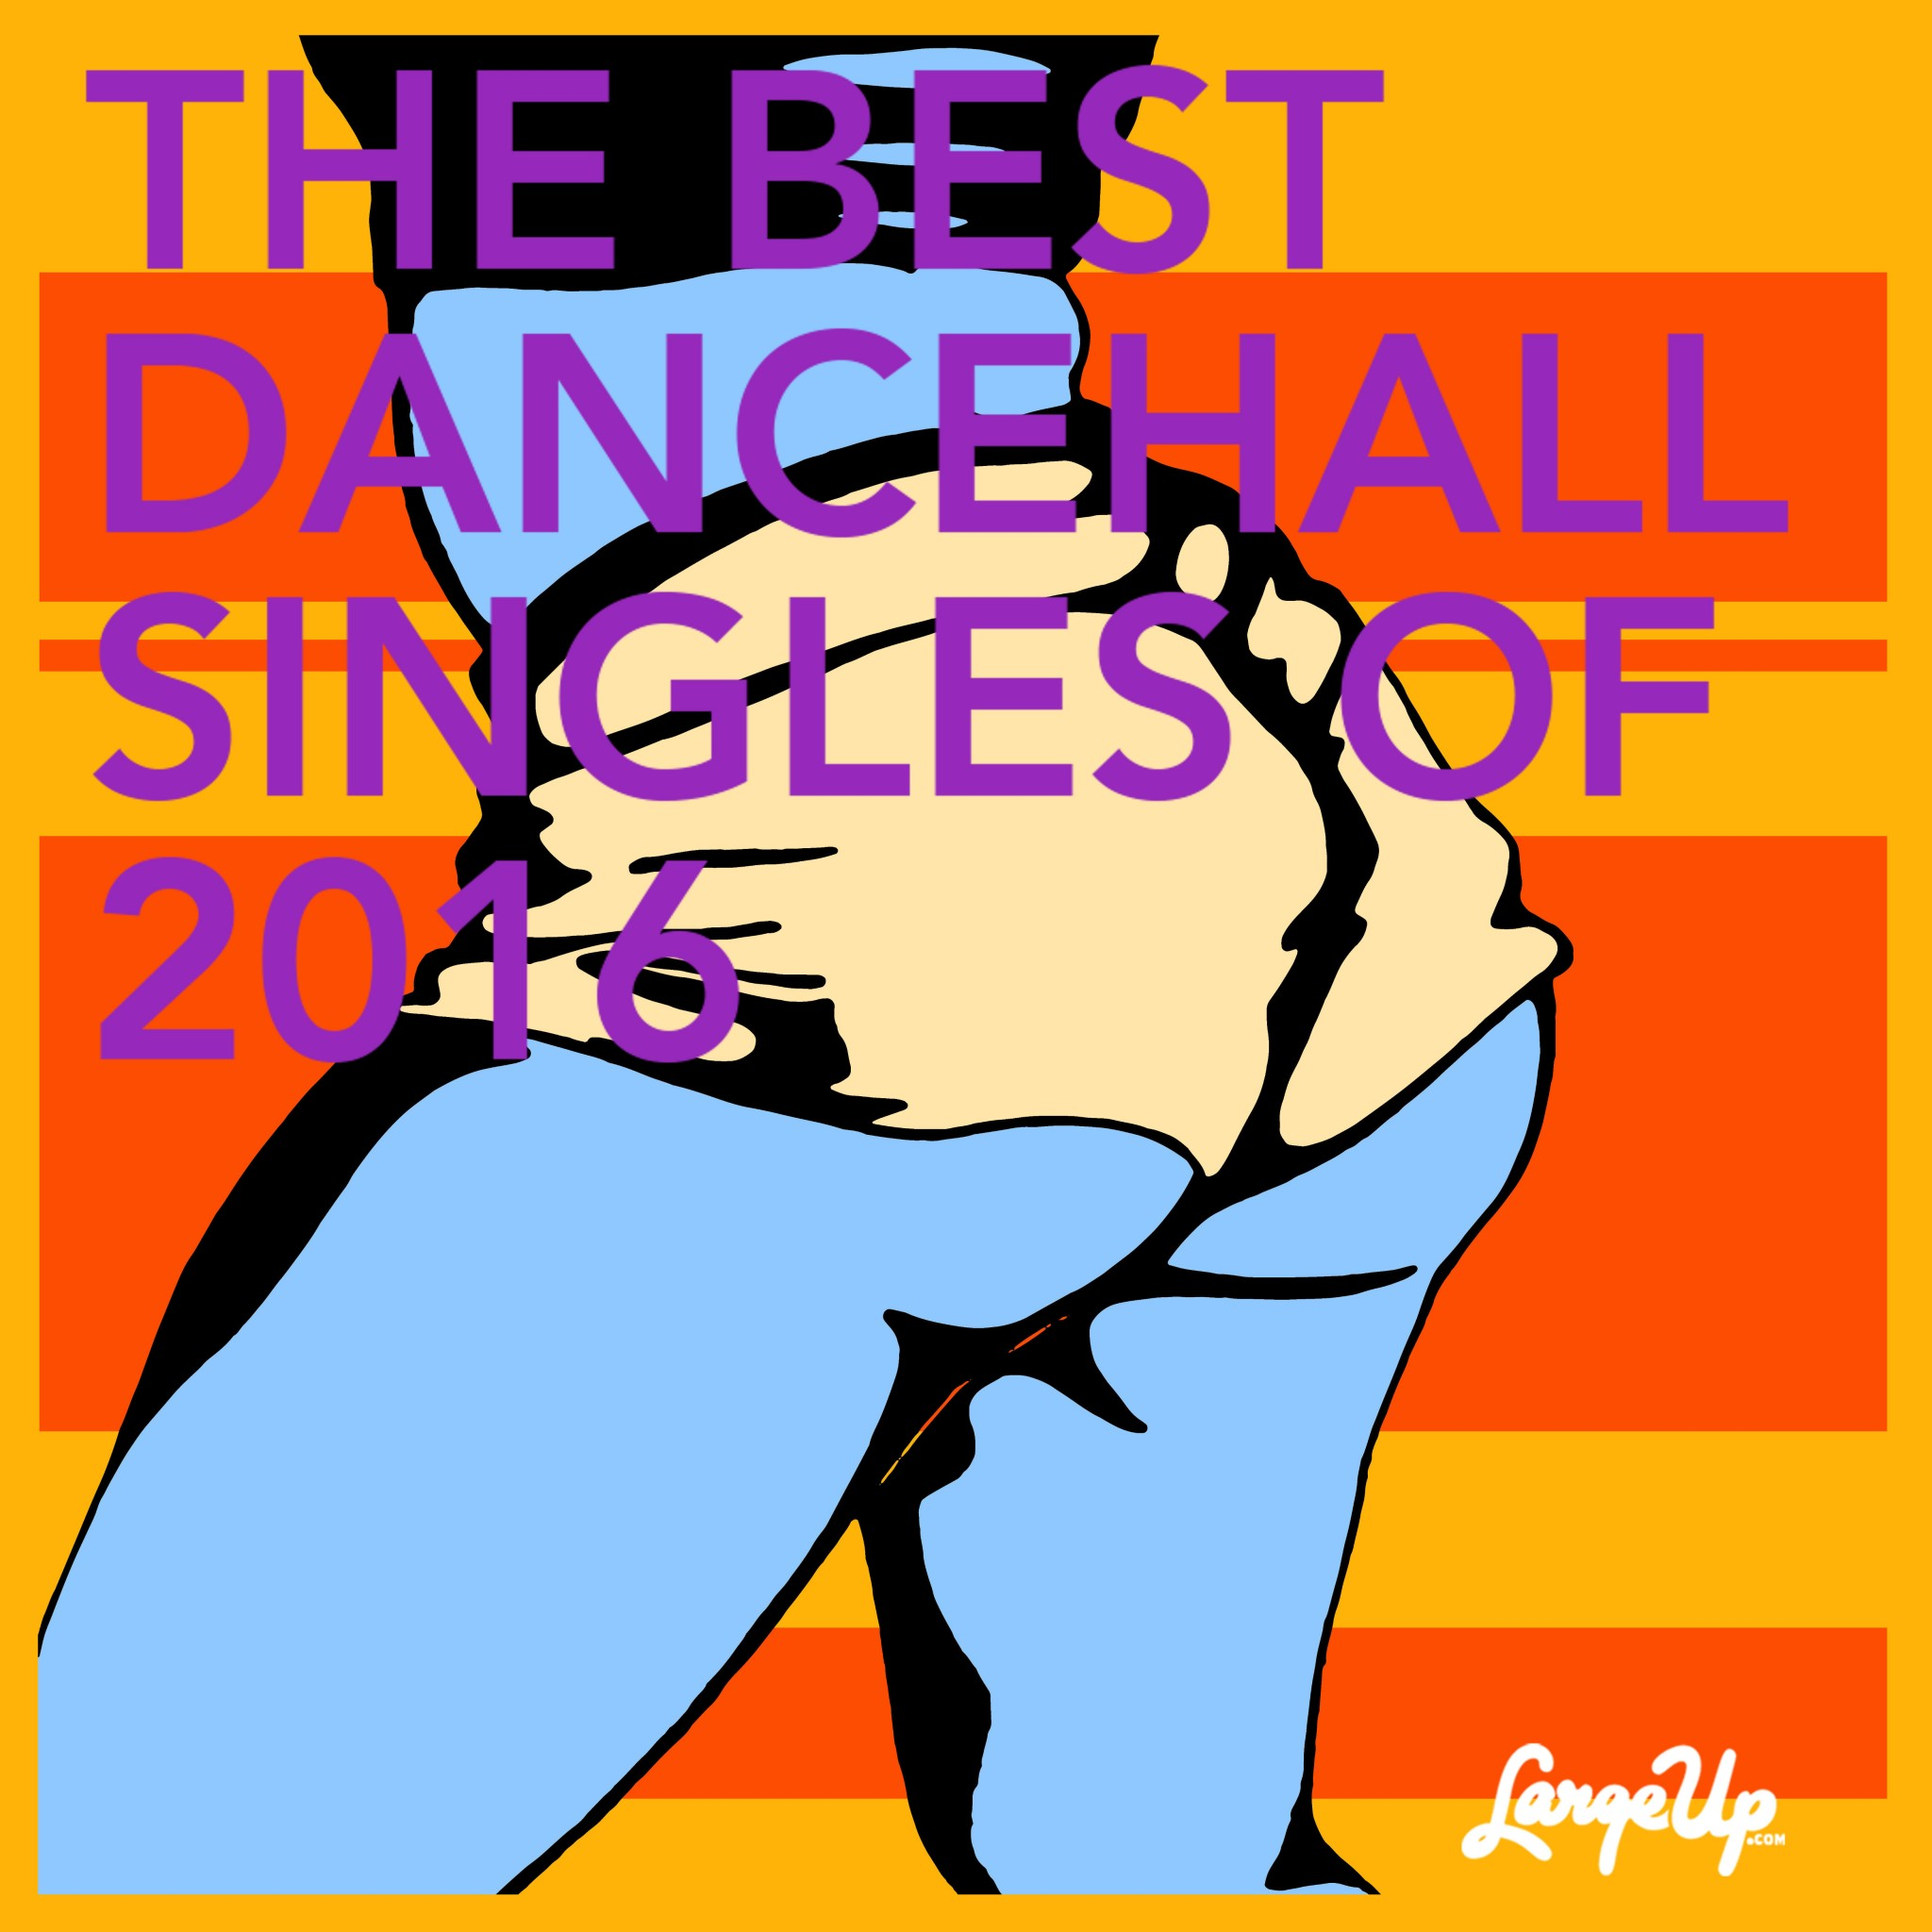 LargeUp.com - The Best Dancehall Singles of 2016